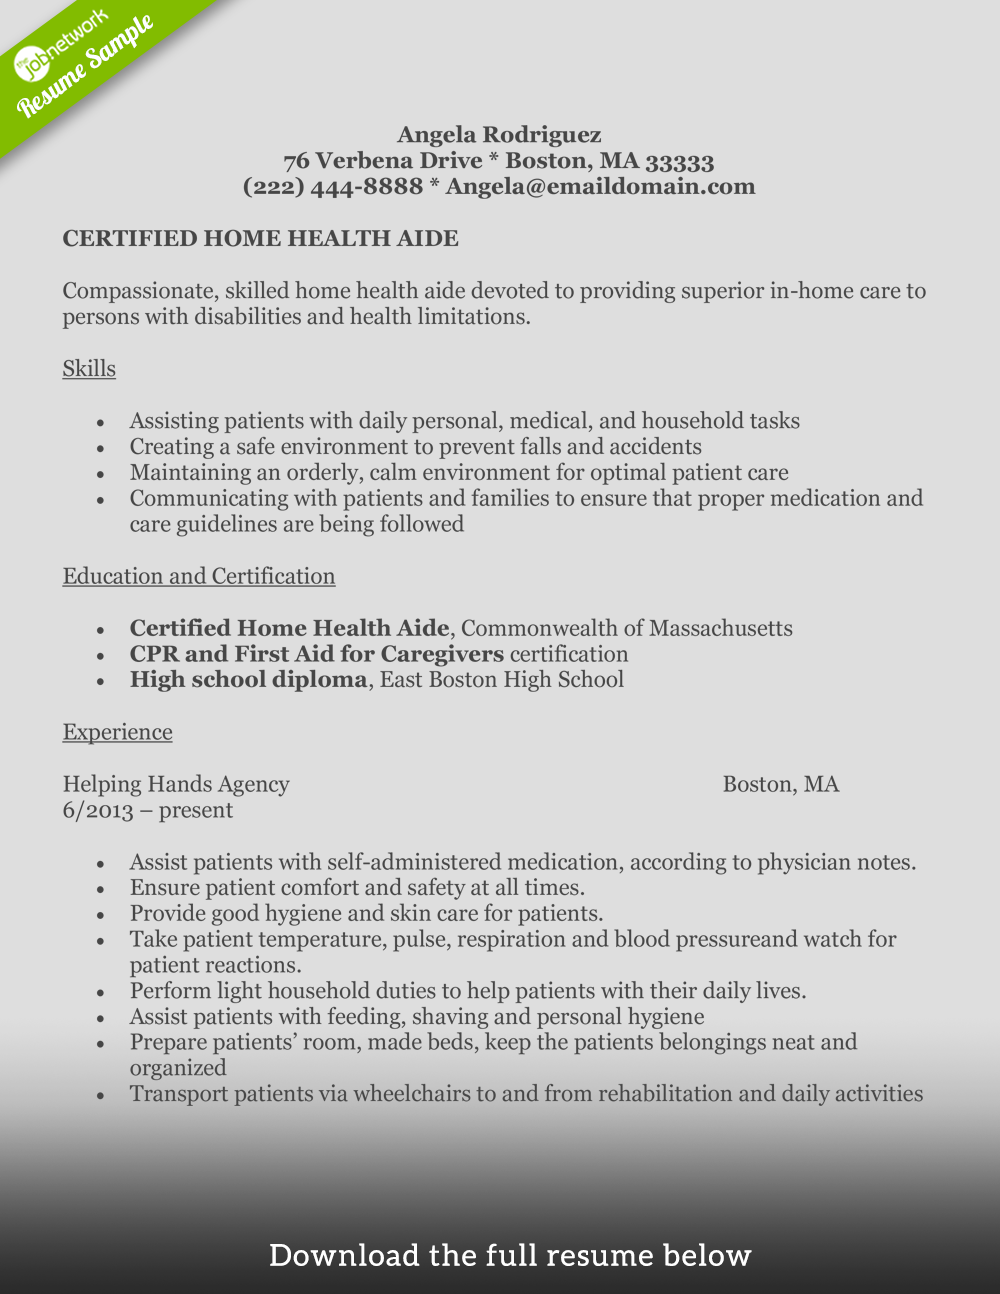 Home Health Aide Resume Certified  High School Teacher Resume Examples